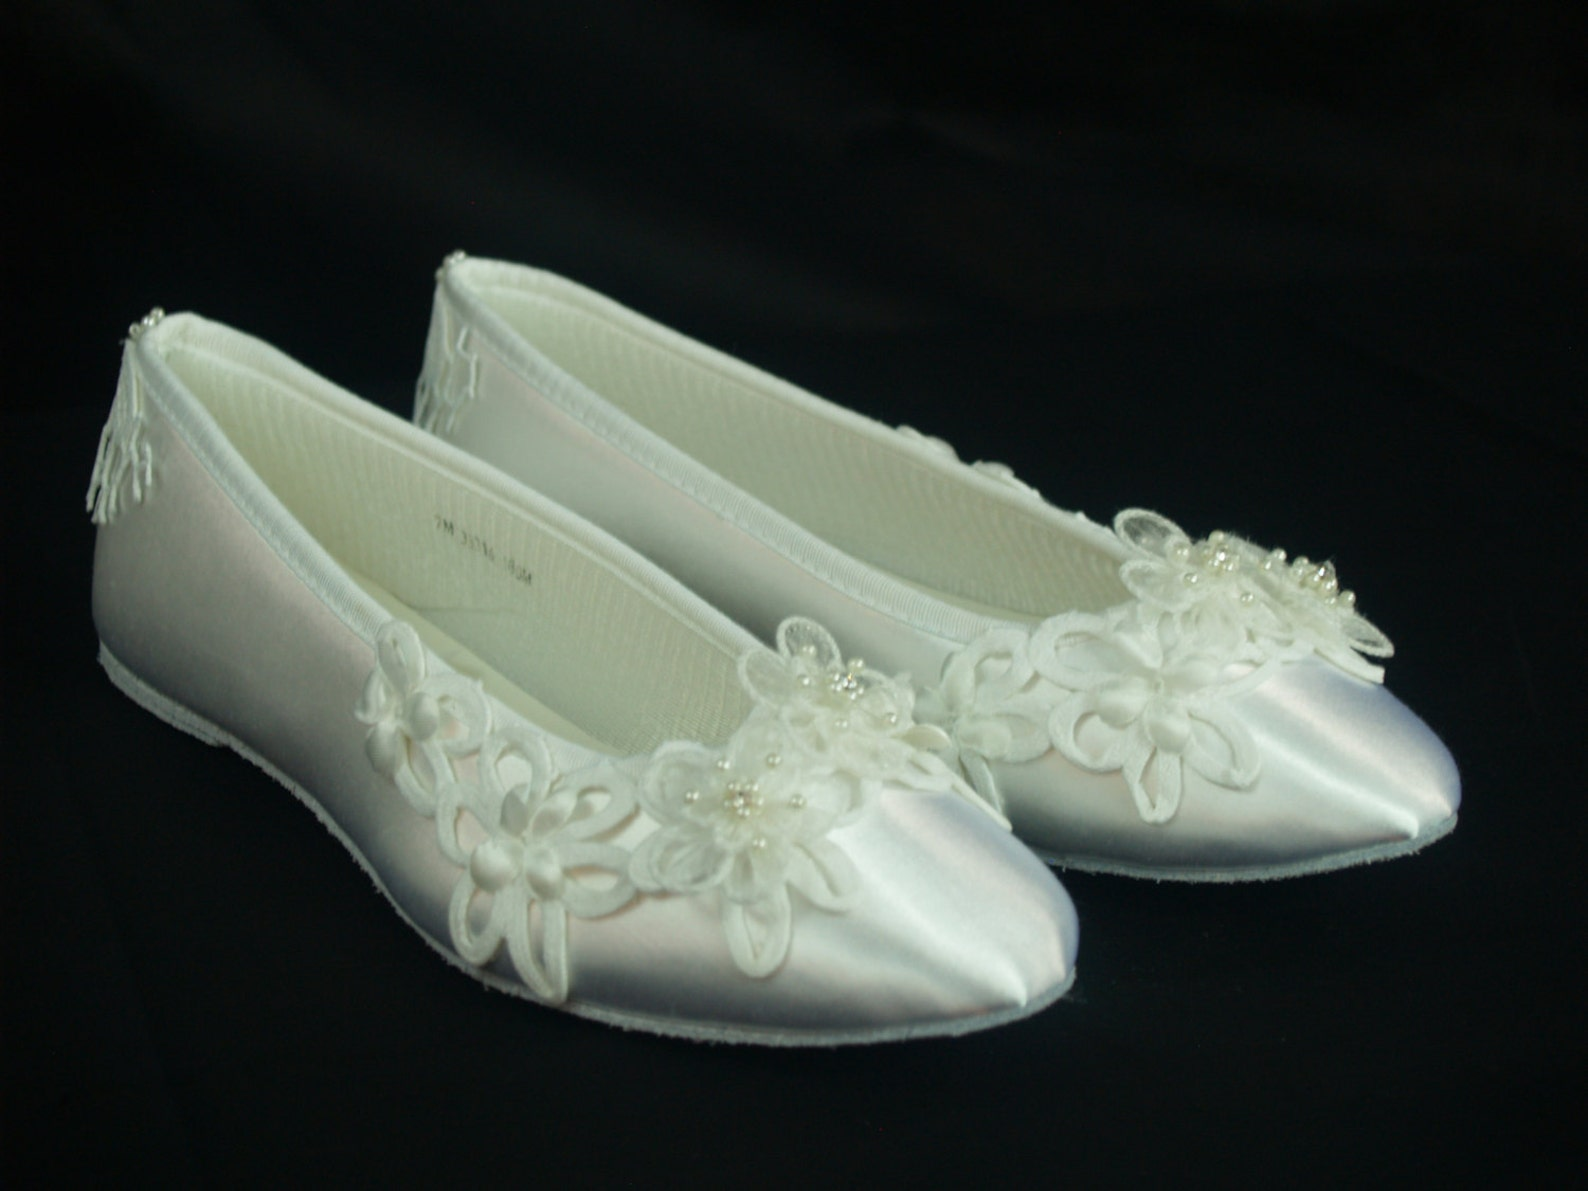 brides wedding flats battenburg lace off white or ivory champagne, ballet style slipper, romantic, satin flats, lace wedding, co